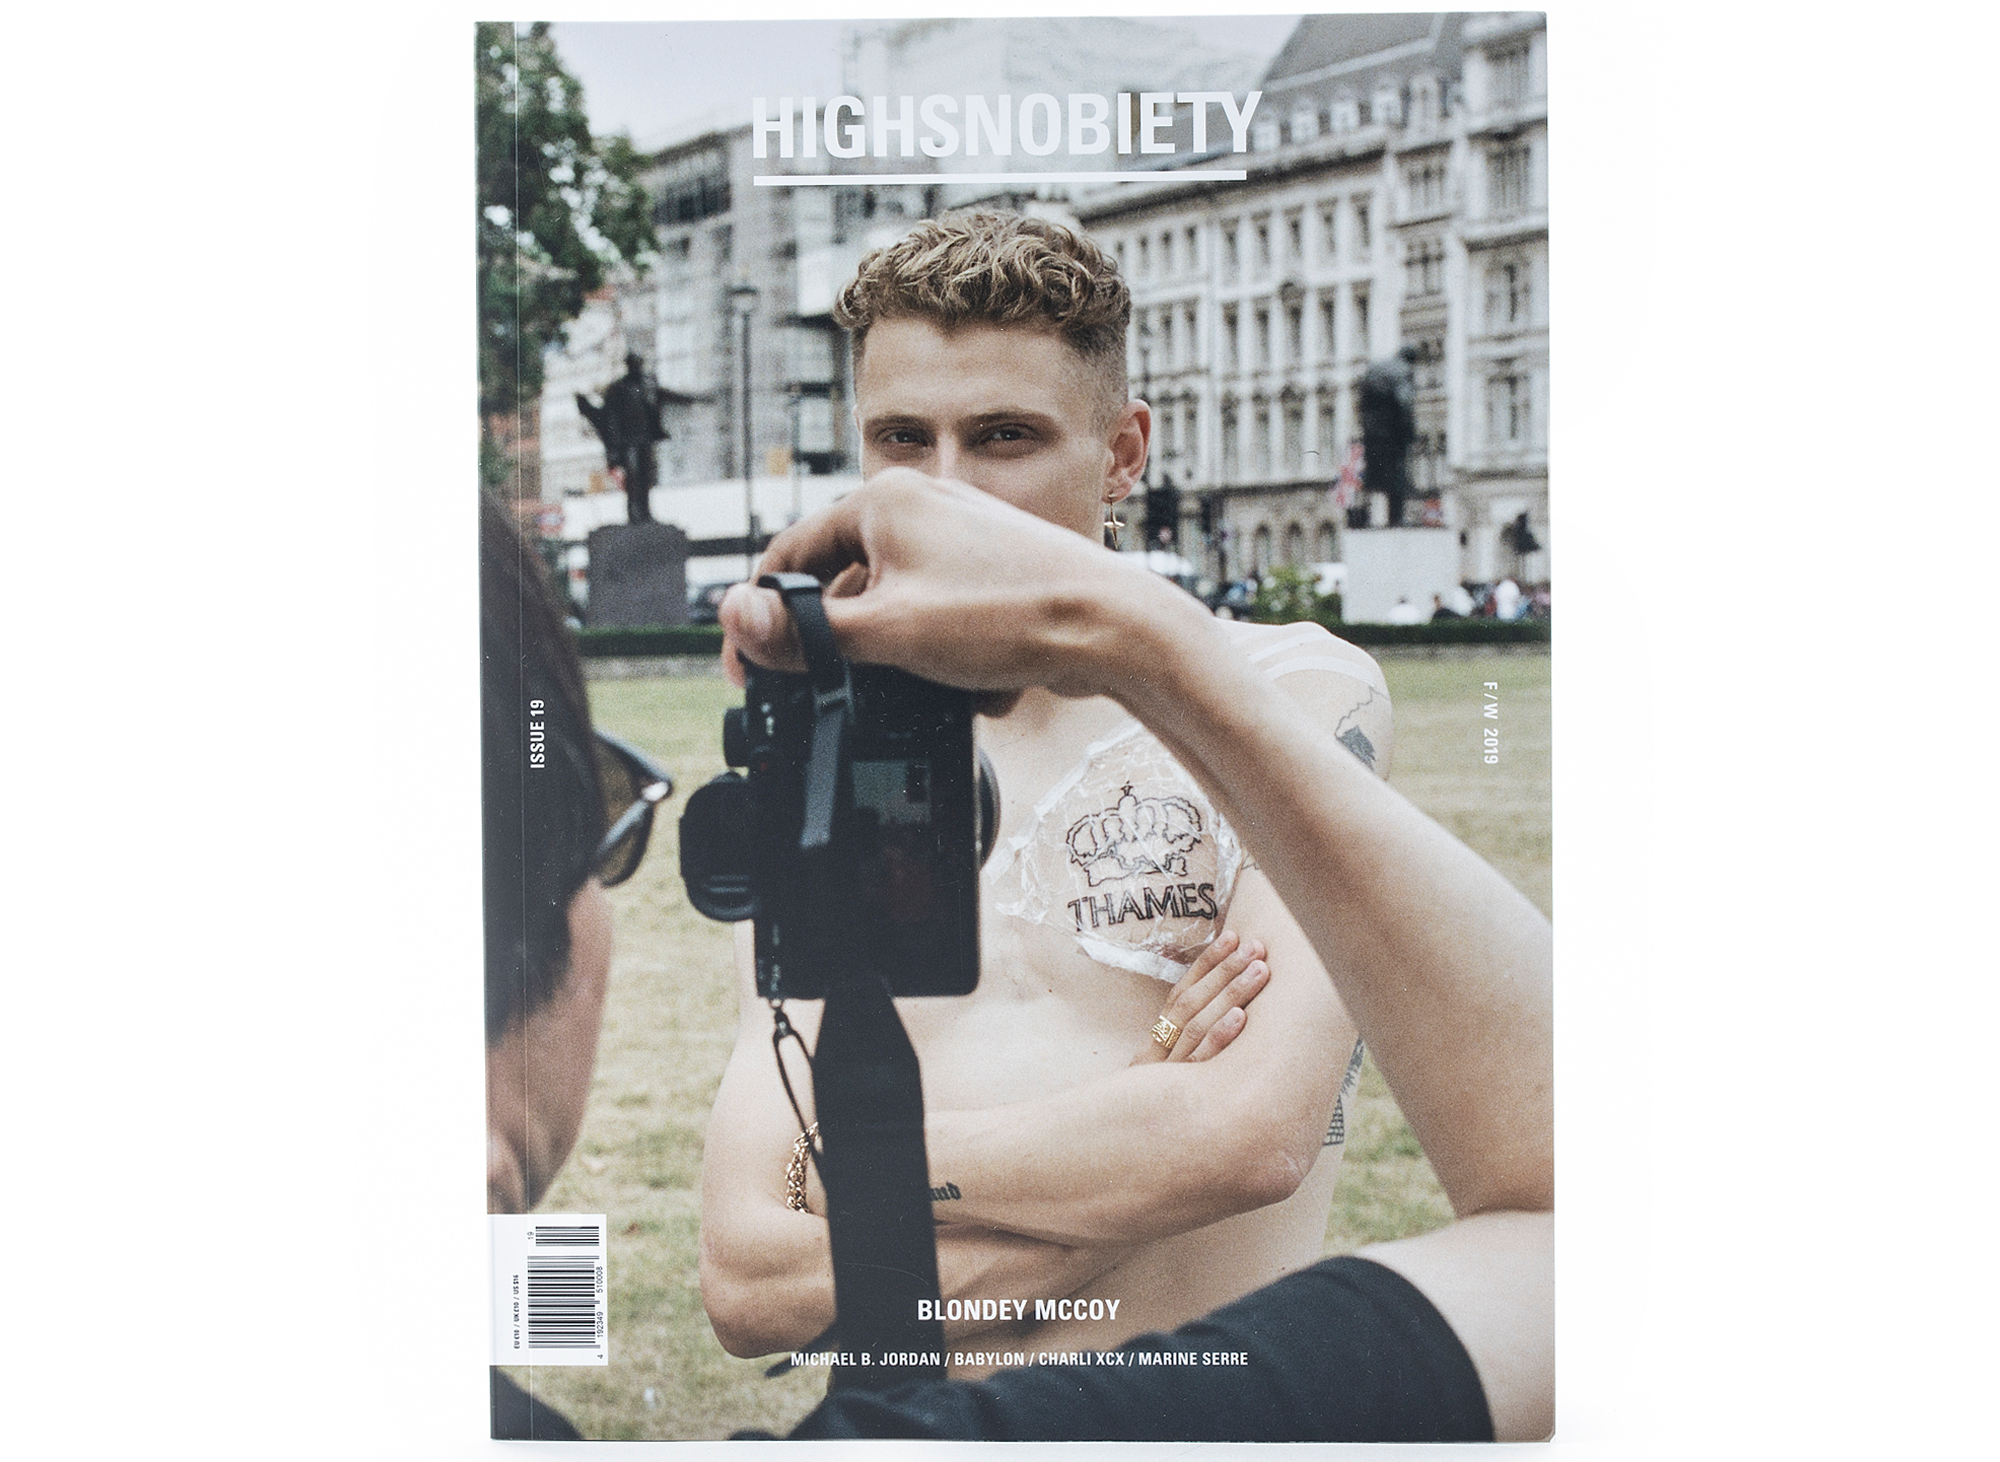 Highsnobiety Magazine Issue 19